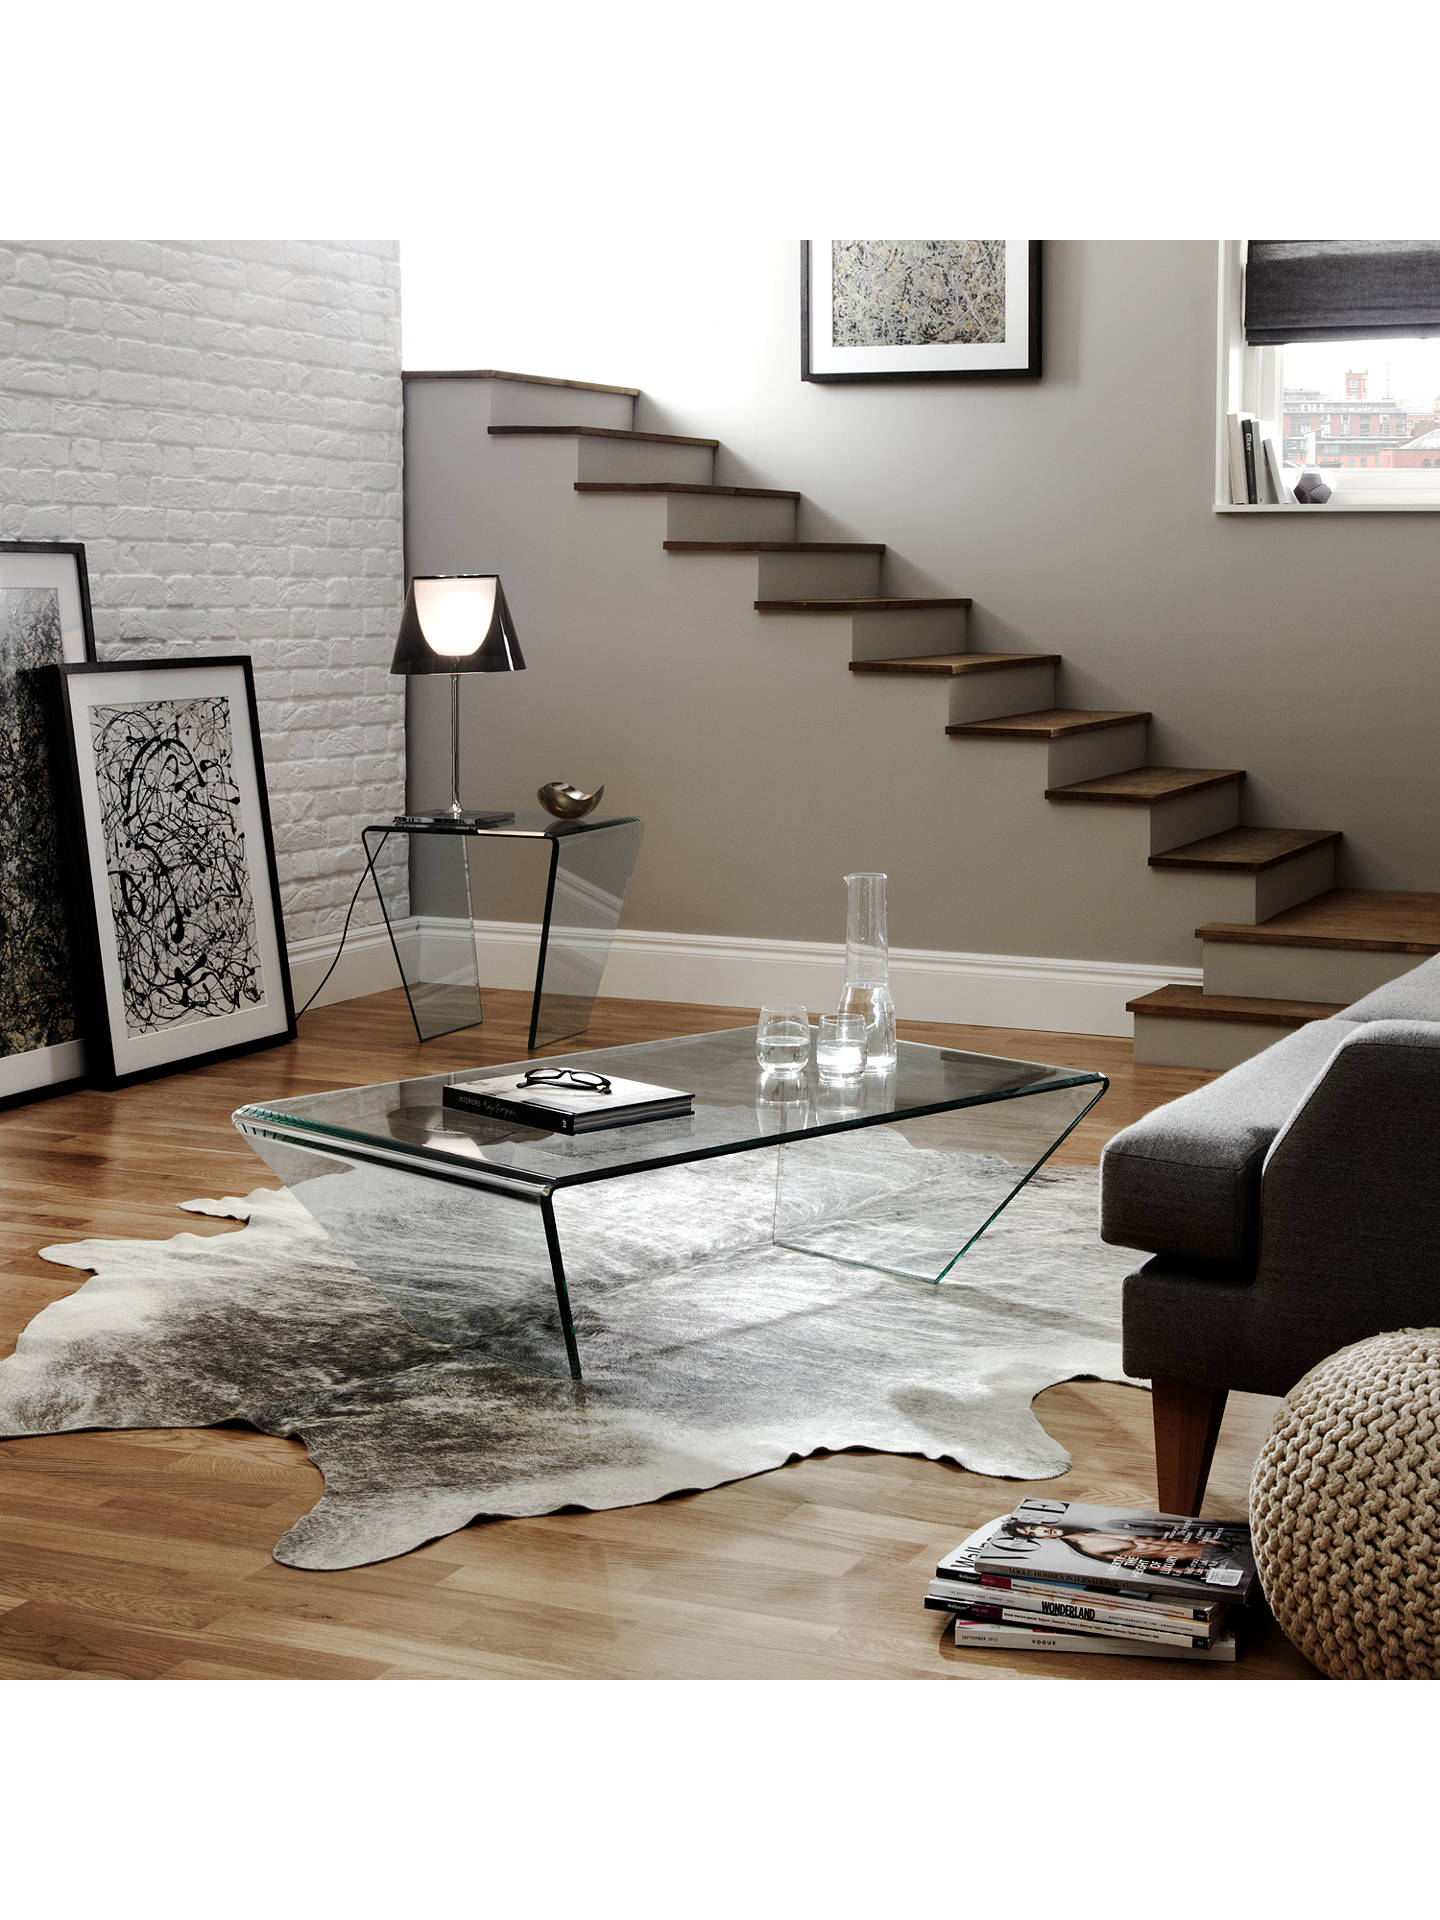 Buy John Lewis & Partners Curvo Glass Coffee Table Online at johnlewis.com